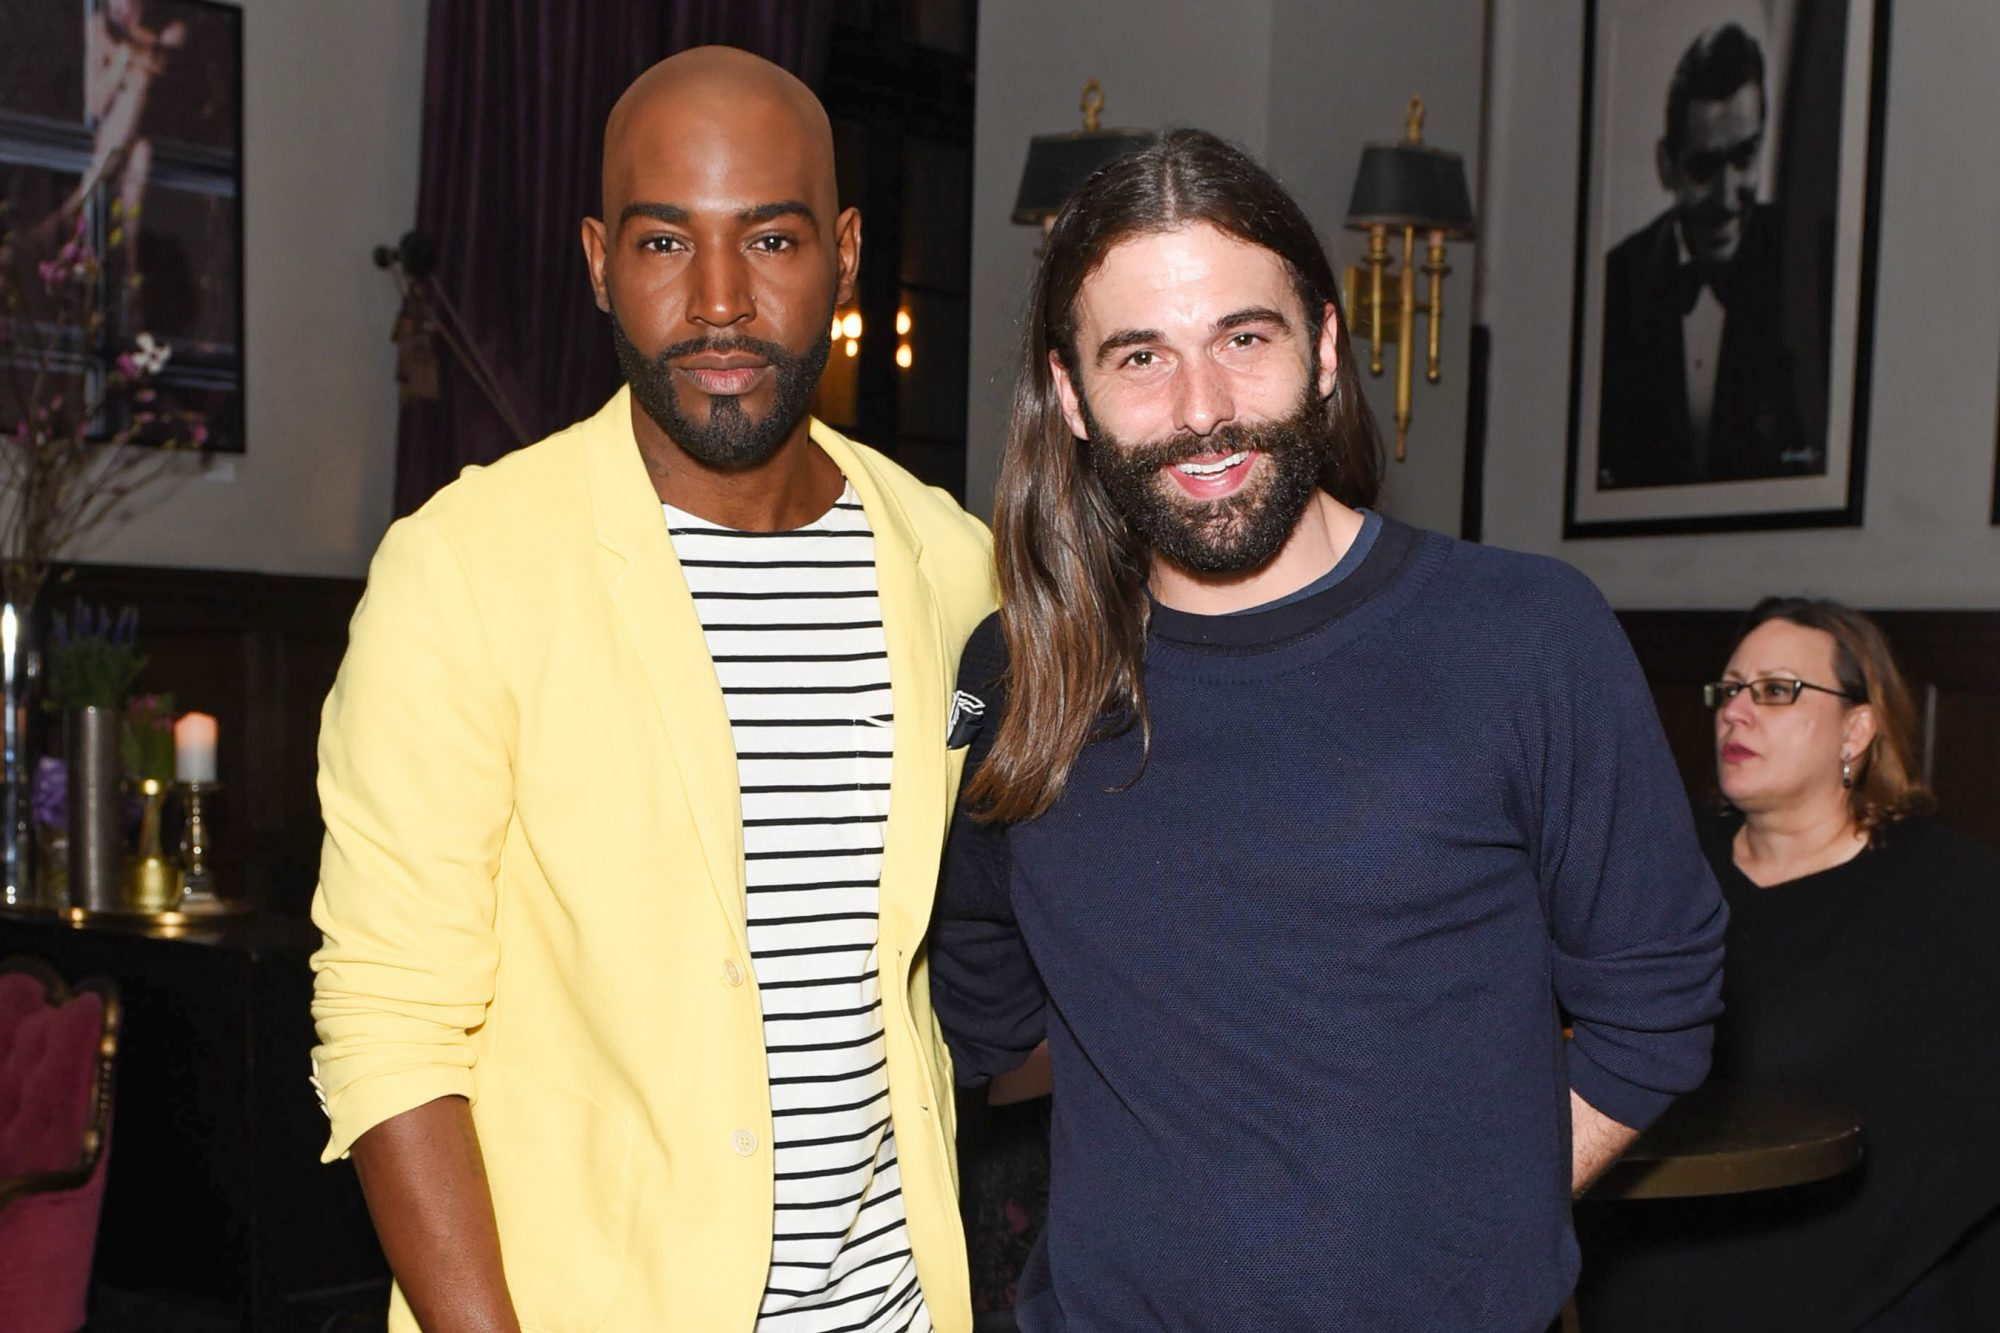 Karamo Brown and Jonathan Van Ness